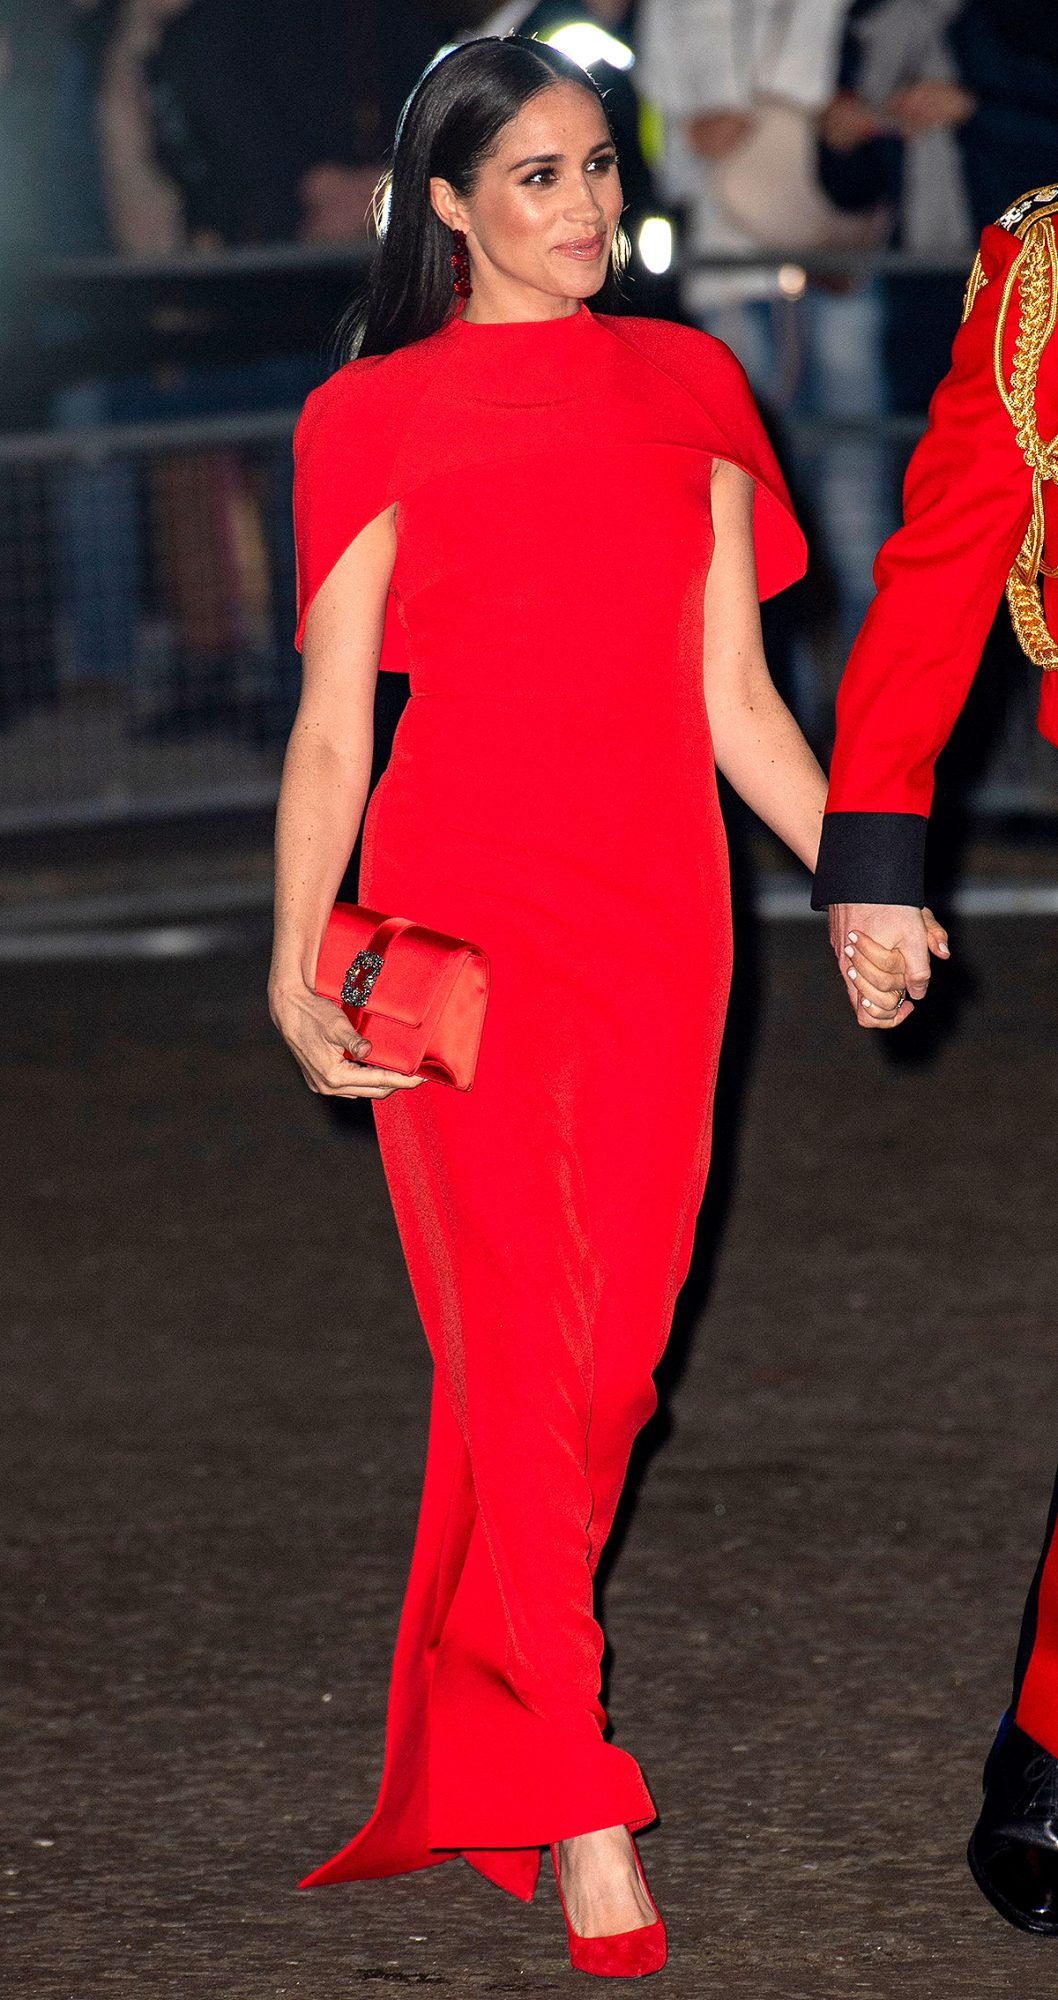 Meghan Duchess of Sussex Mountbatten Festival of Music at the Royal Albert Hall, London, UK - 07 Mar 2020